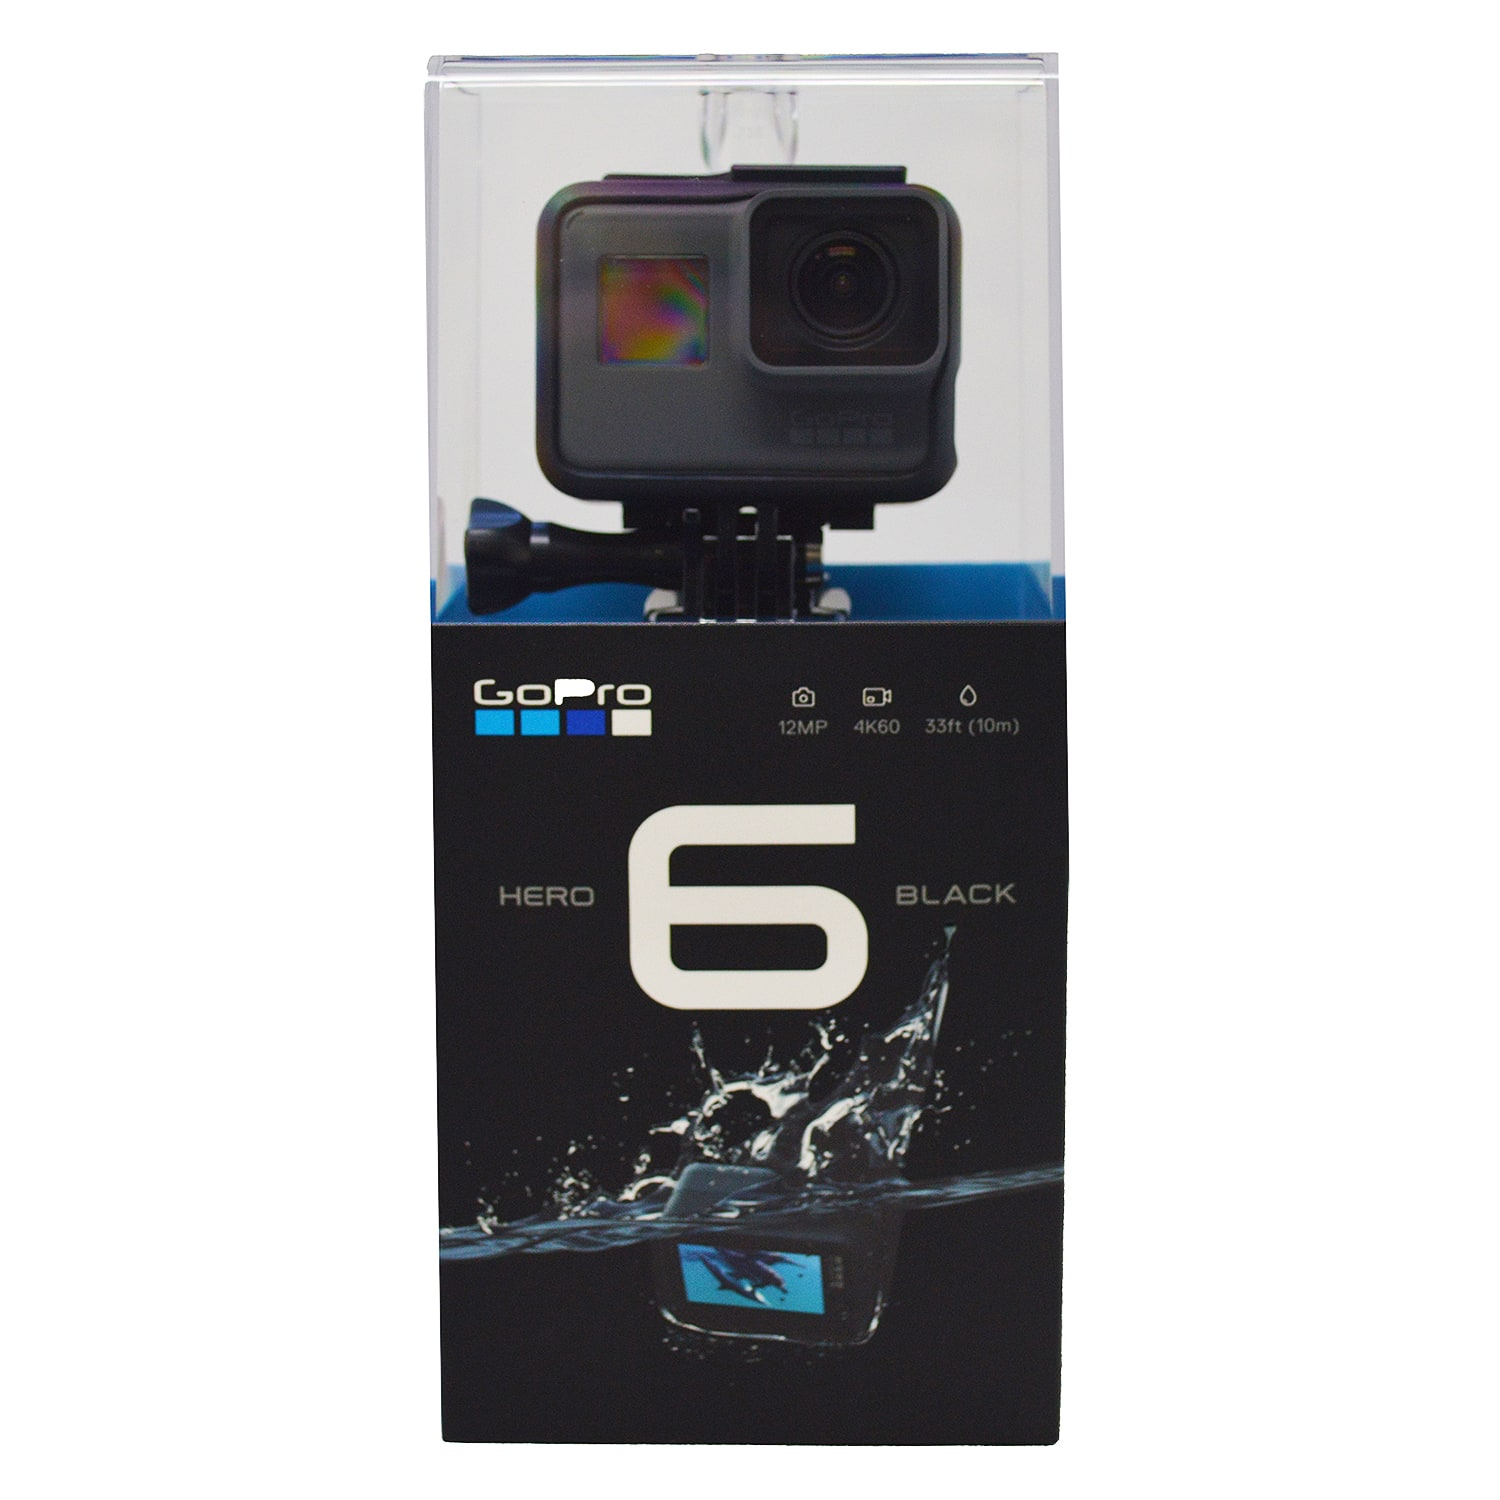 GoPro HERO6 4K Black Action Camera $450 + free shipping